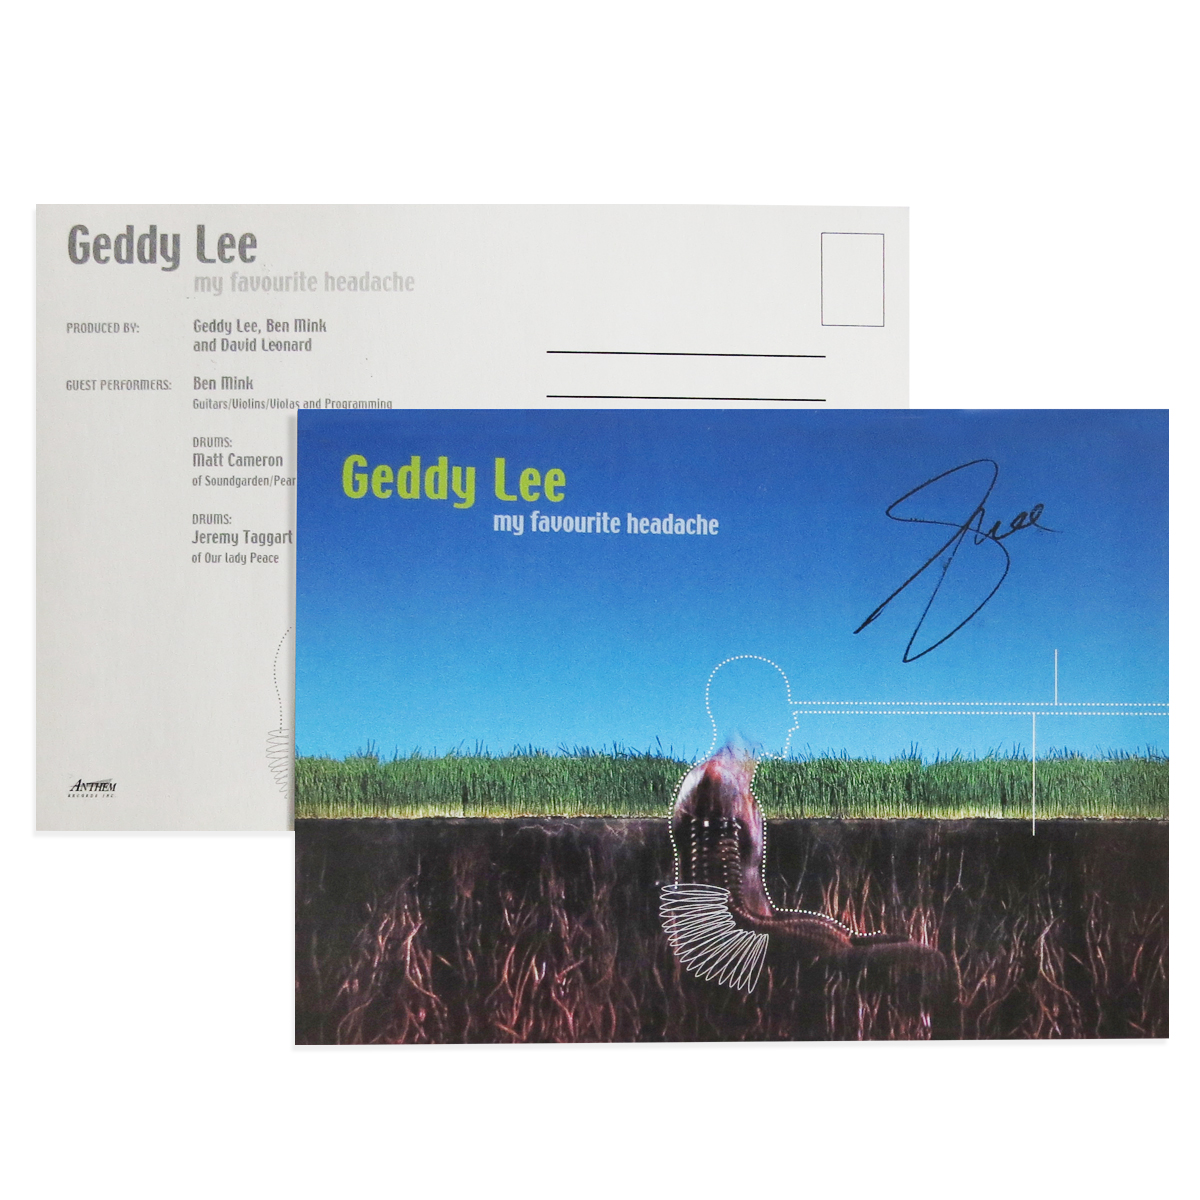 Geddy Lee - My Favourite Headache 2LP Vinyl + Geddy Lee Favorite Blue Tee + Promo CD from the Archives + Autographed MFH Postcard